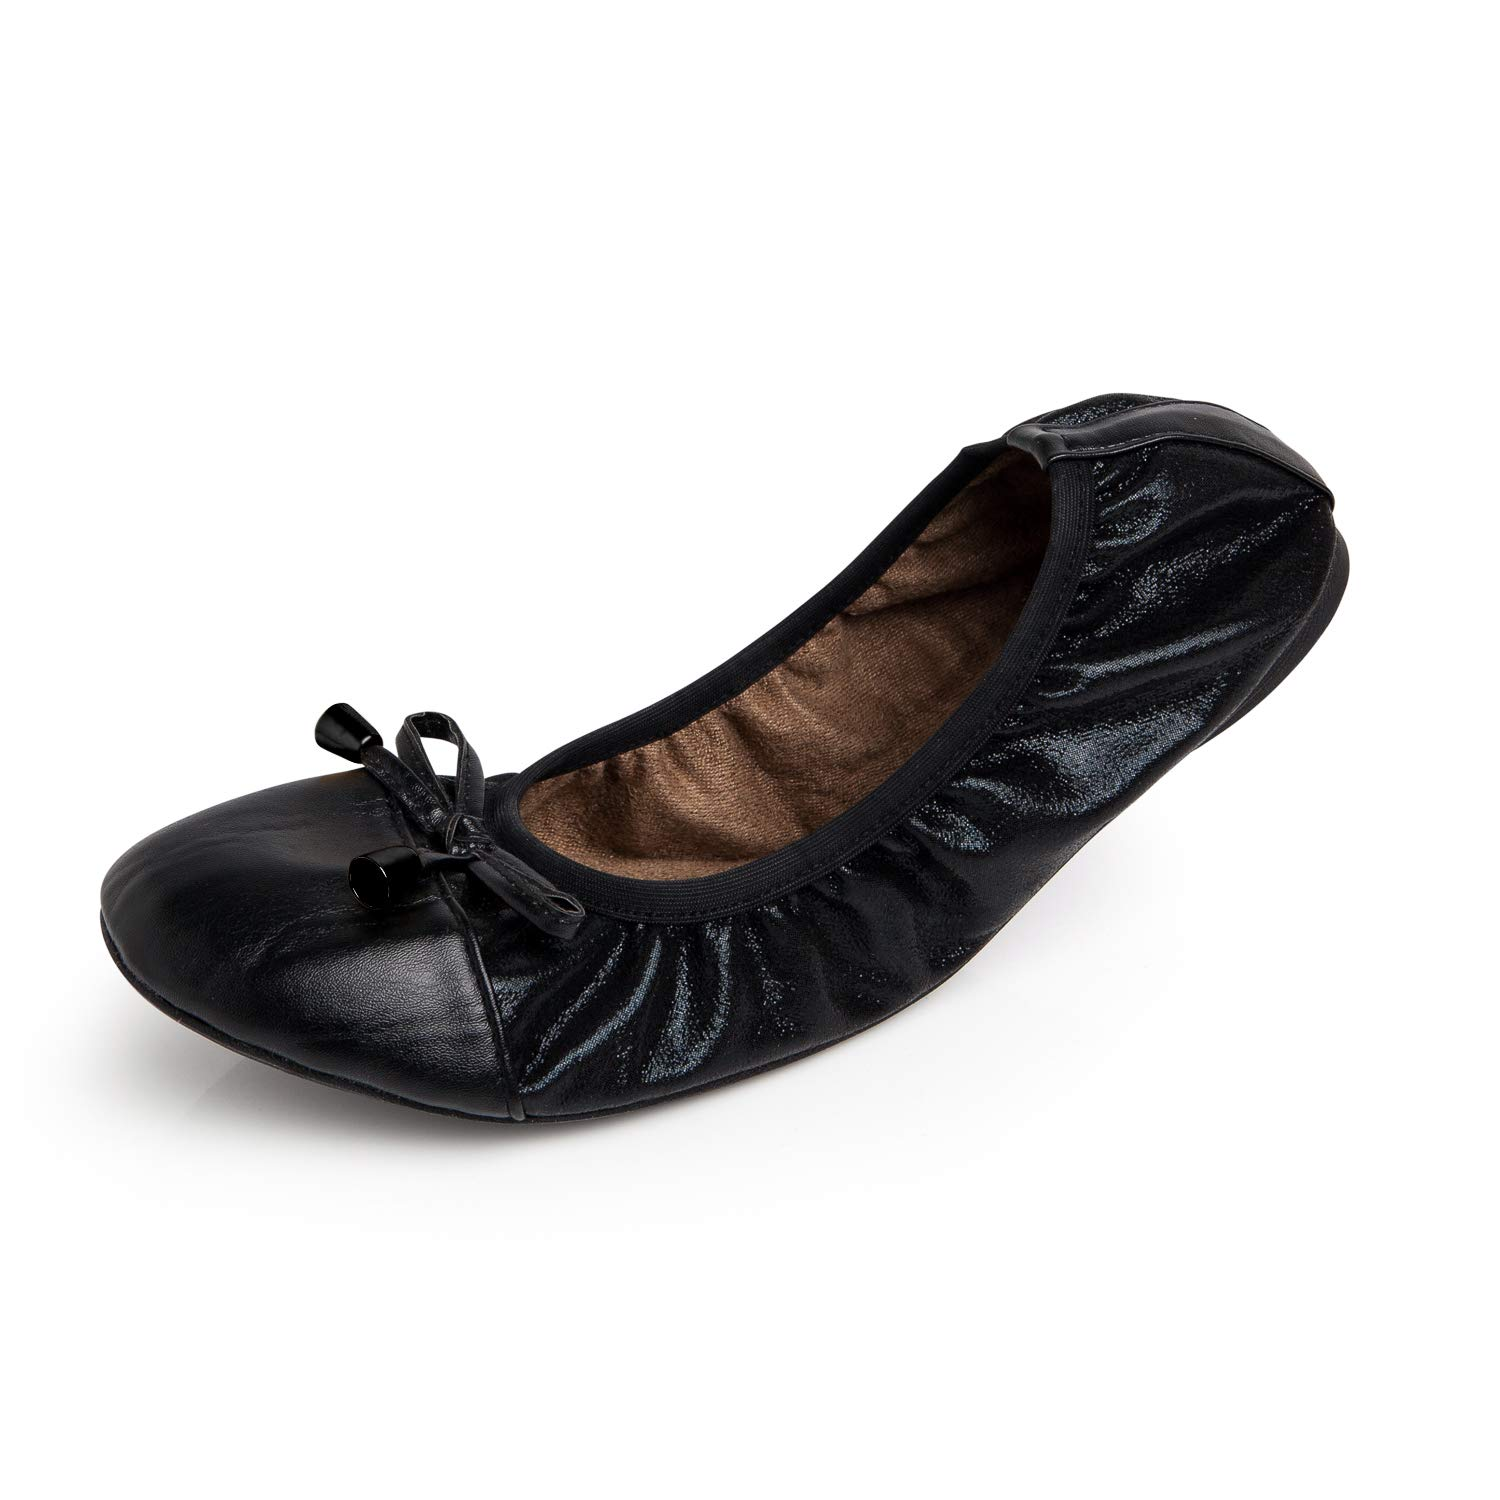 Girls Ballerina Style Shoe With Jewel Detail 4 Colours! H2303